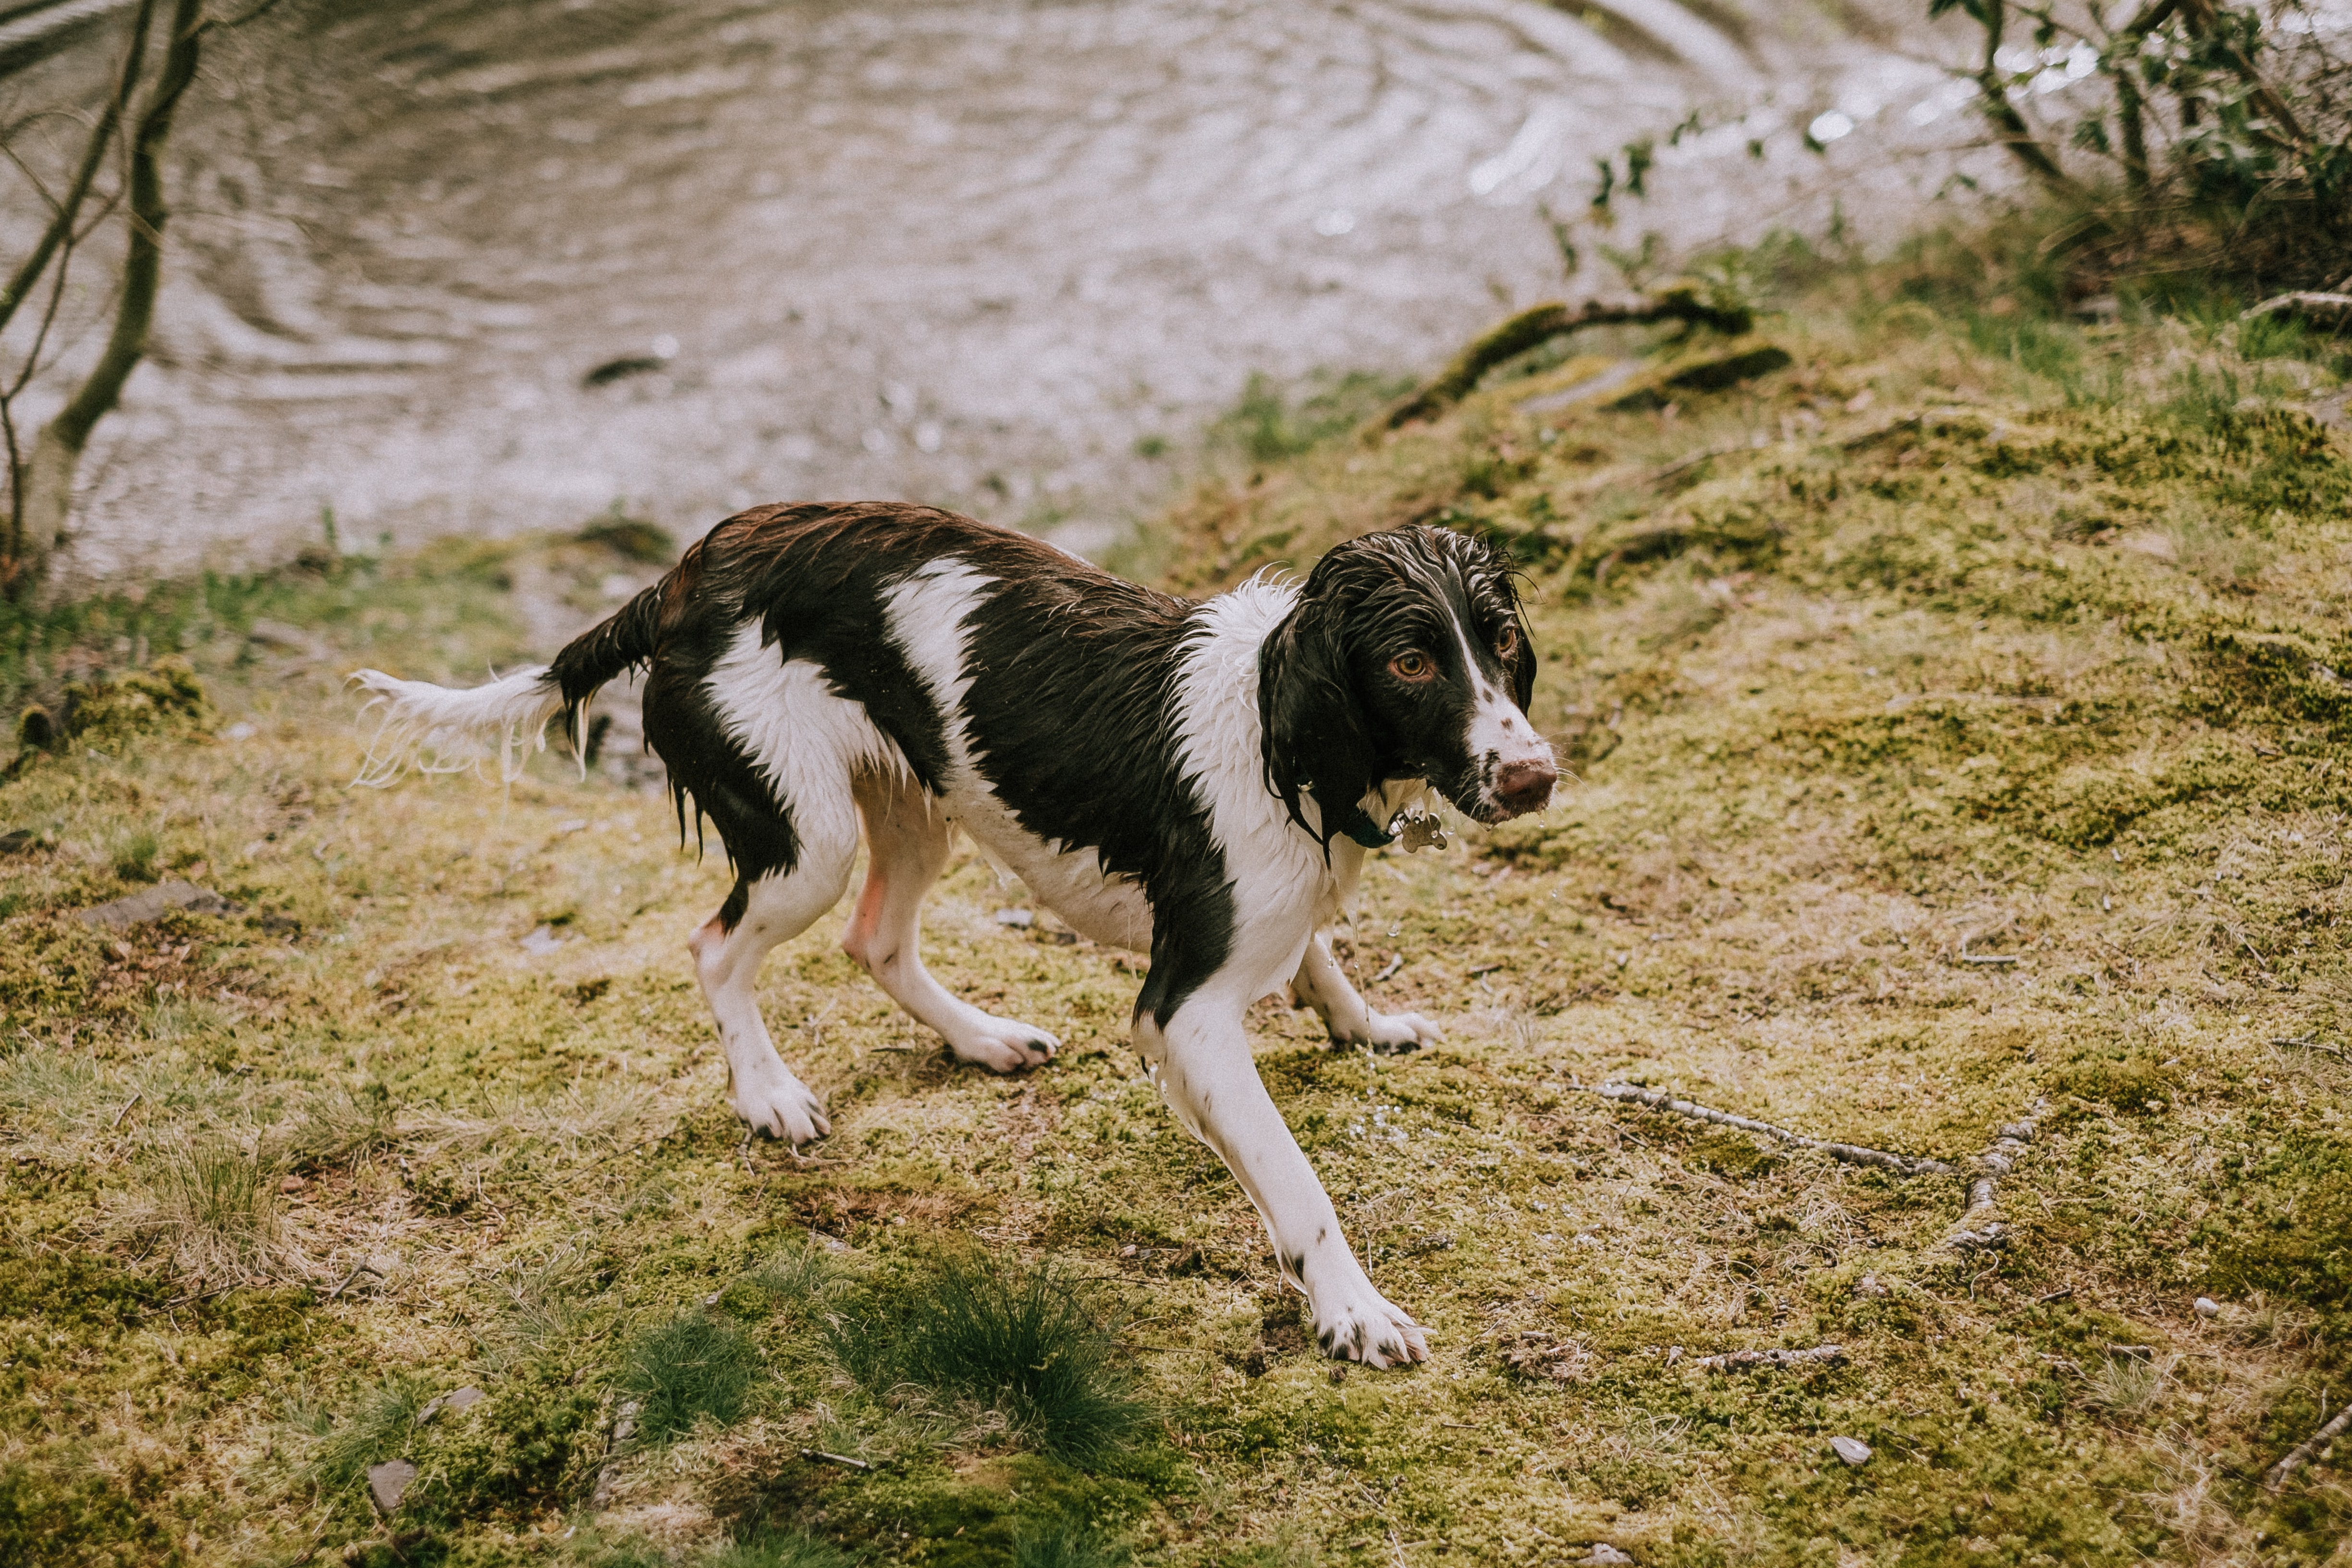 A black and white dog wet from emerging from a rippling pond